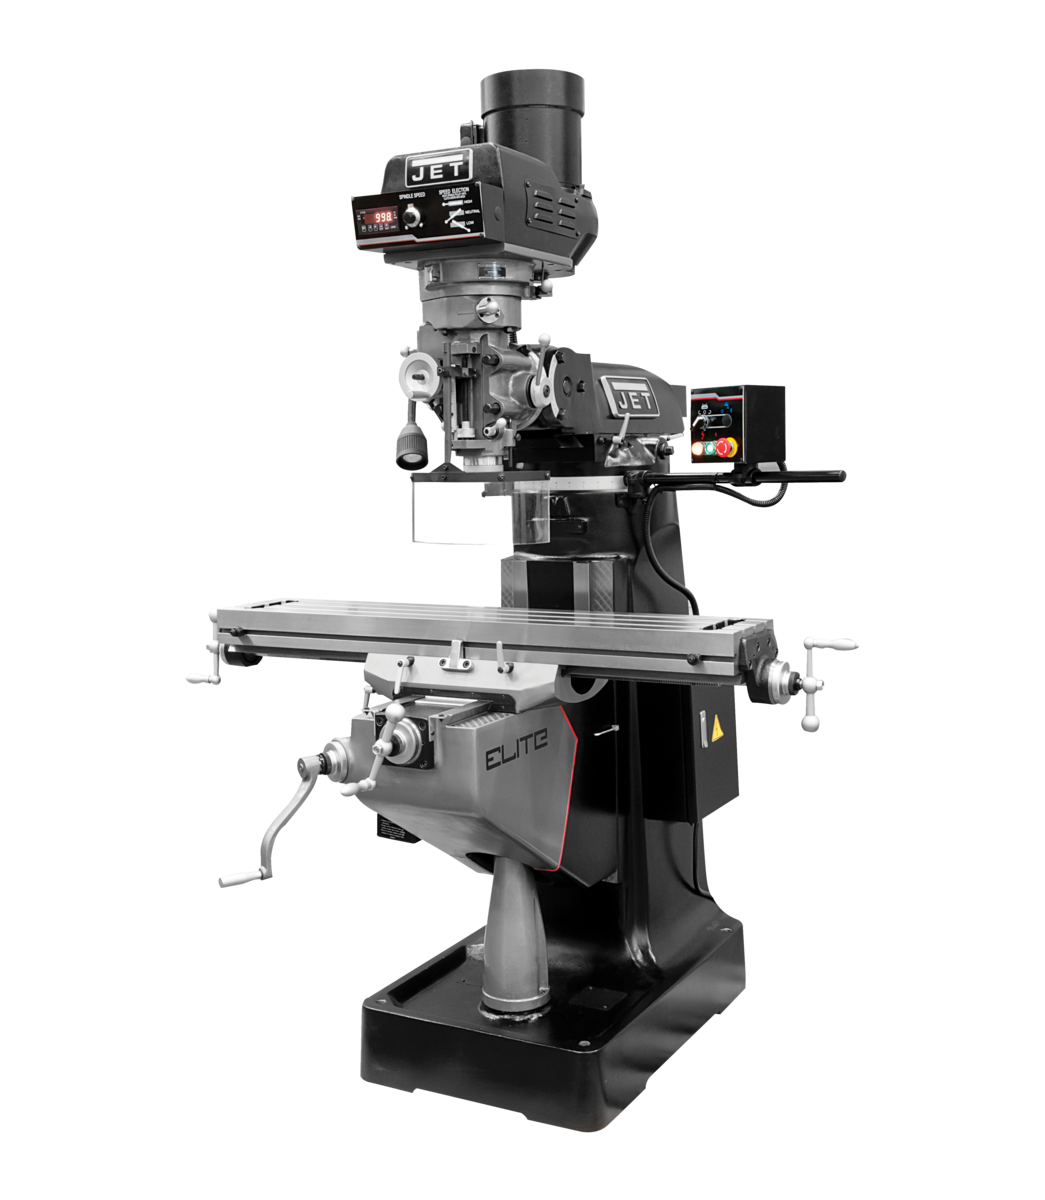 EVS-949 Mill with 3-Axis ACU-RITE 303 (Quill) DRO and X, Y, Z-Axis JET Powerfeeds